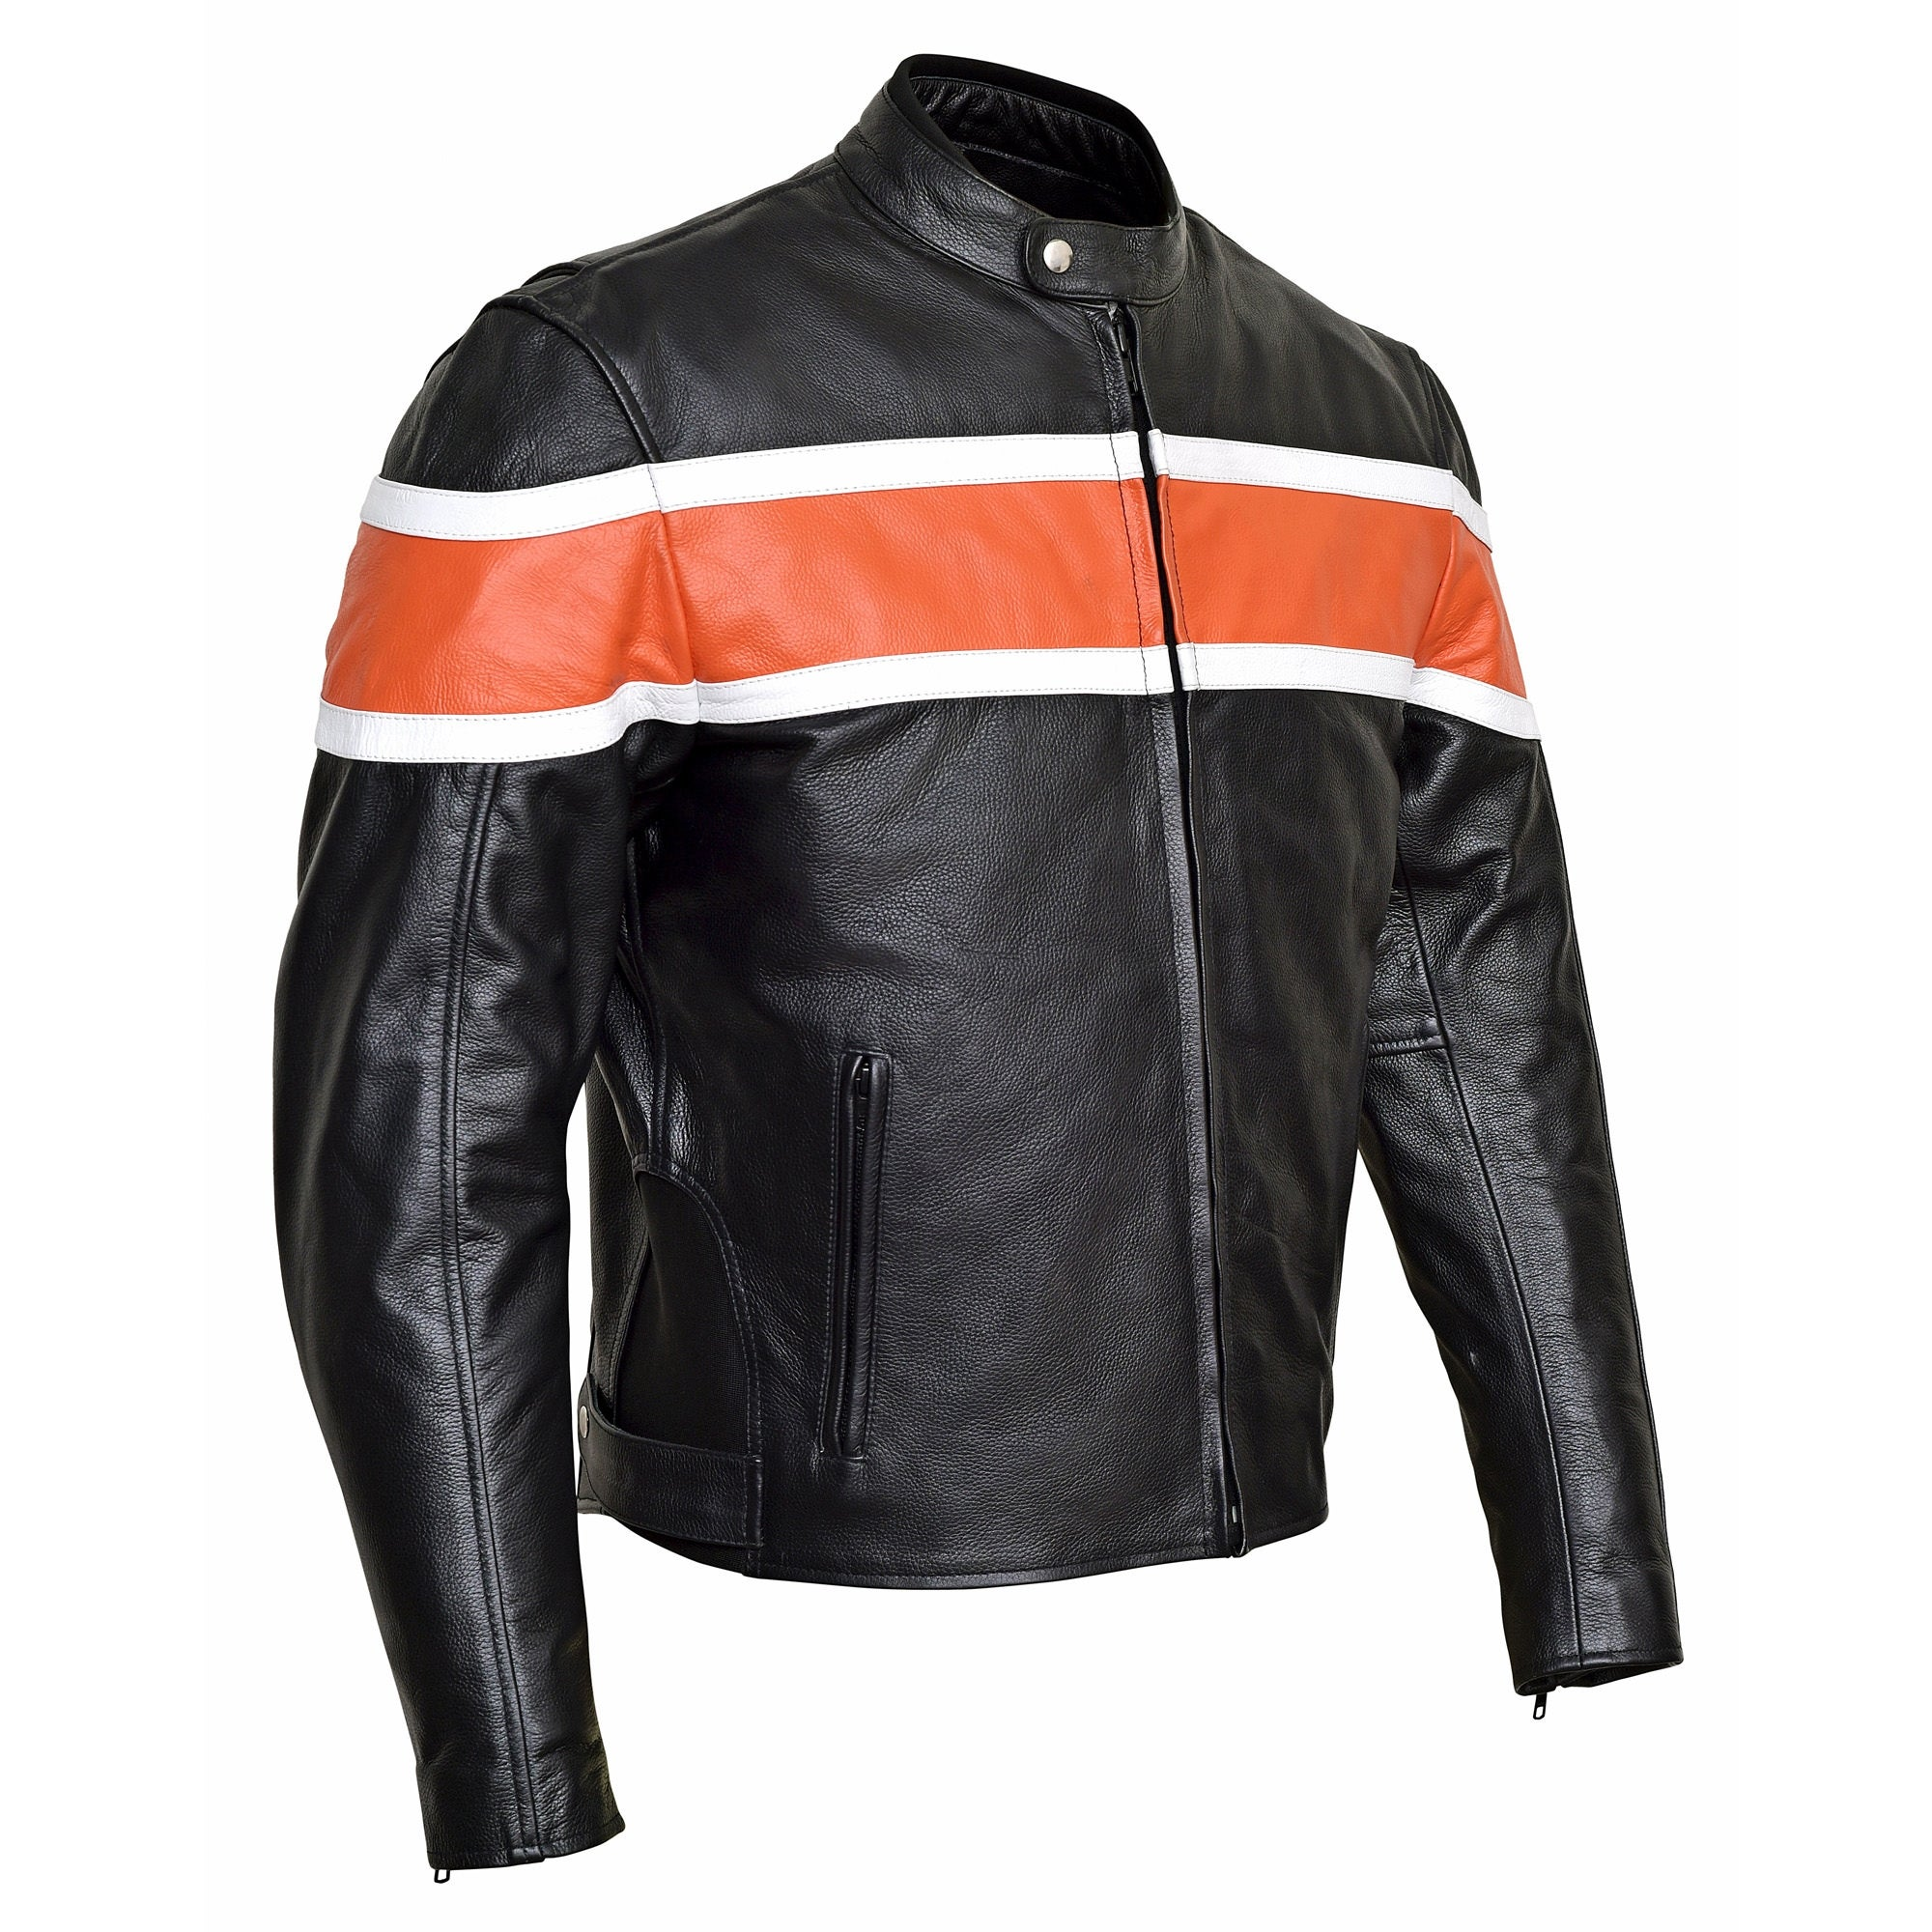 Men S Classic Leather Motorcycle Jacket Ce Body Armor Mbj001 Free Shipping Today Com 19448289